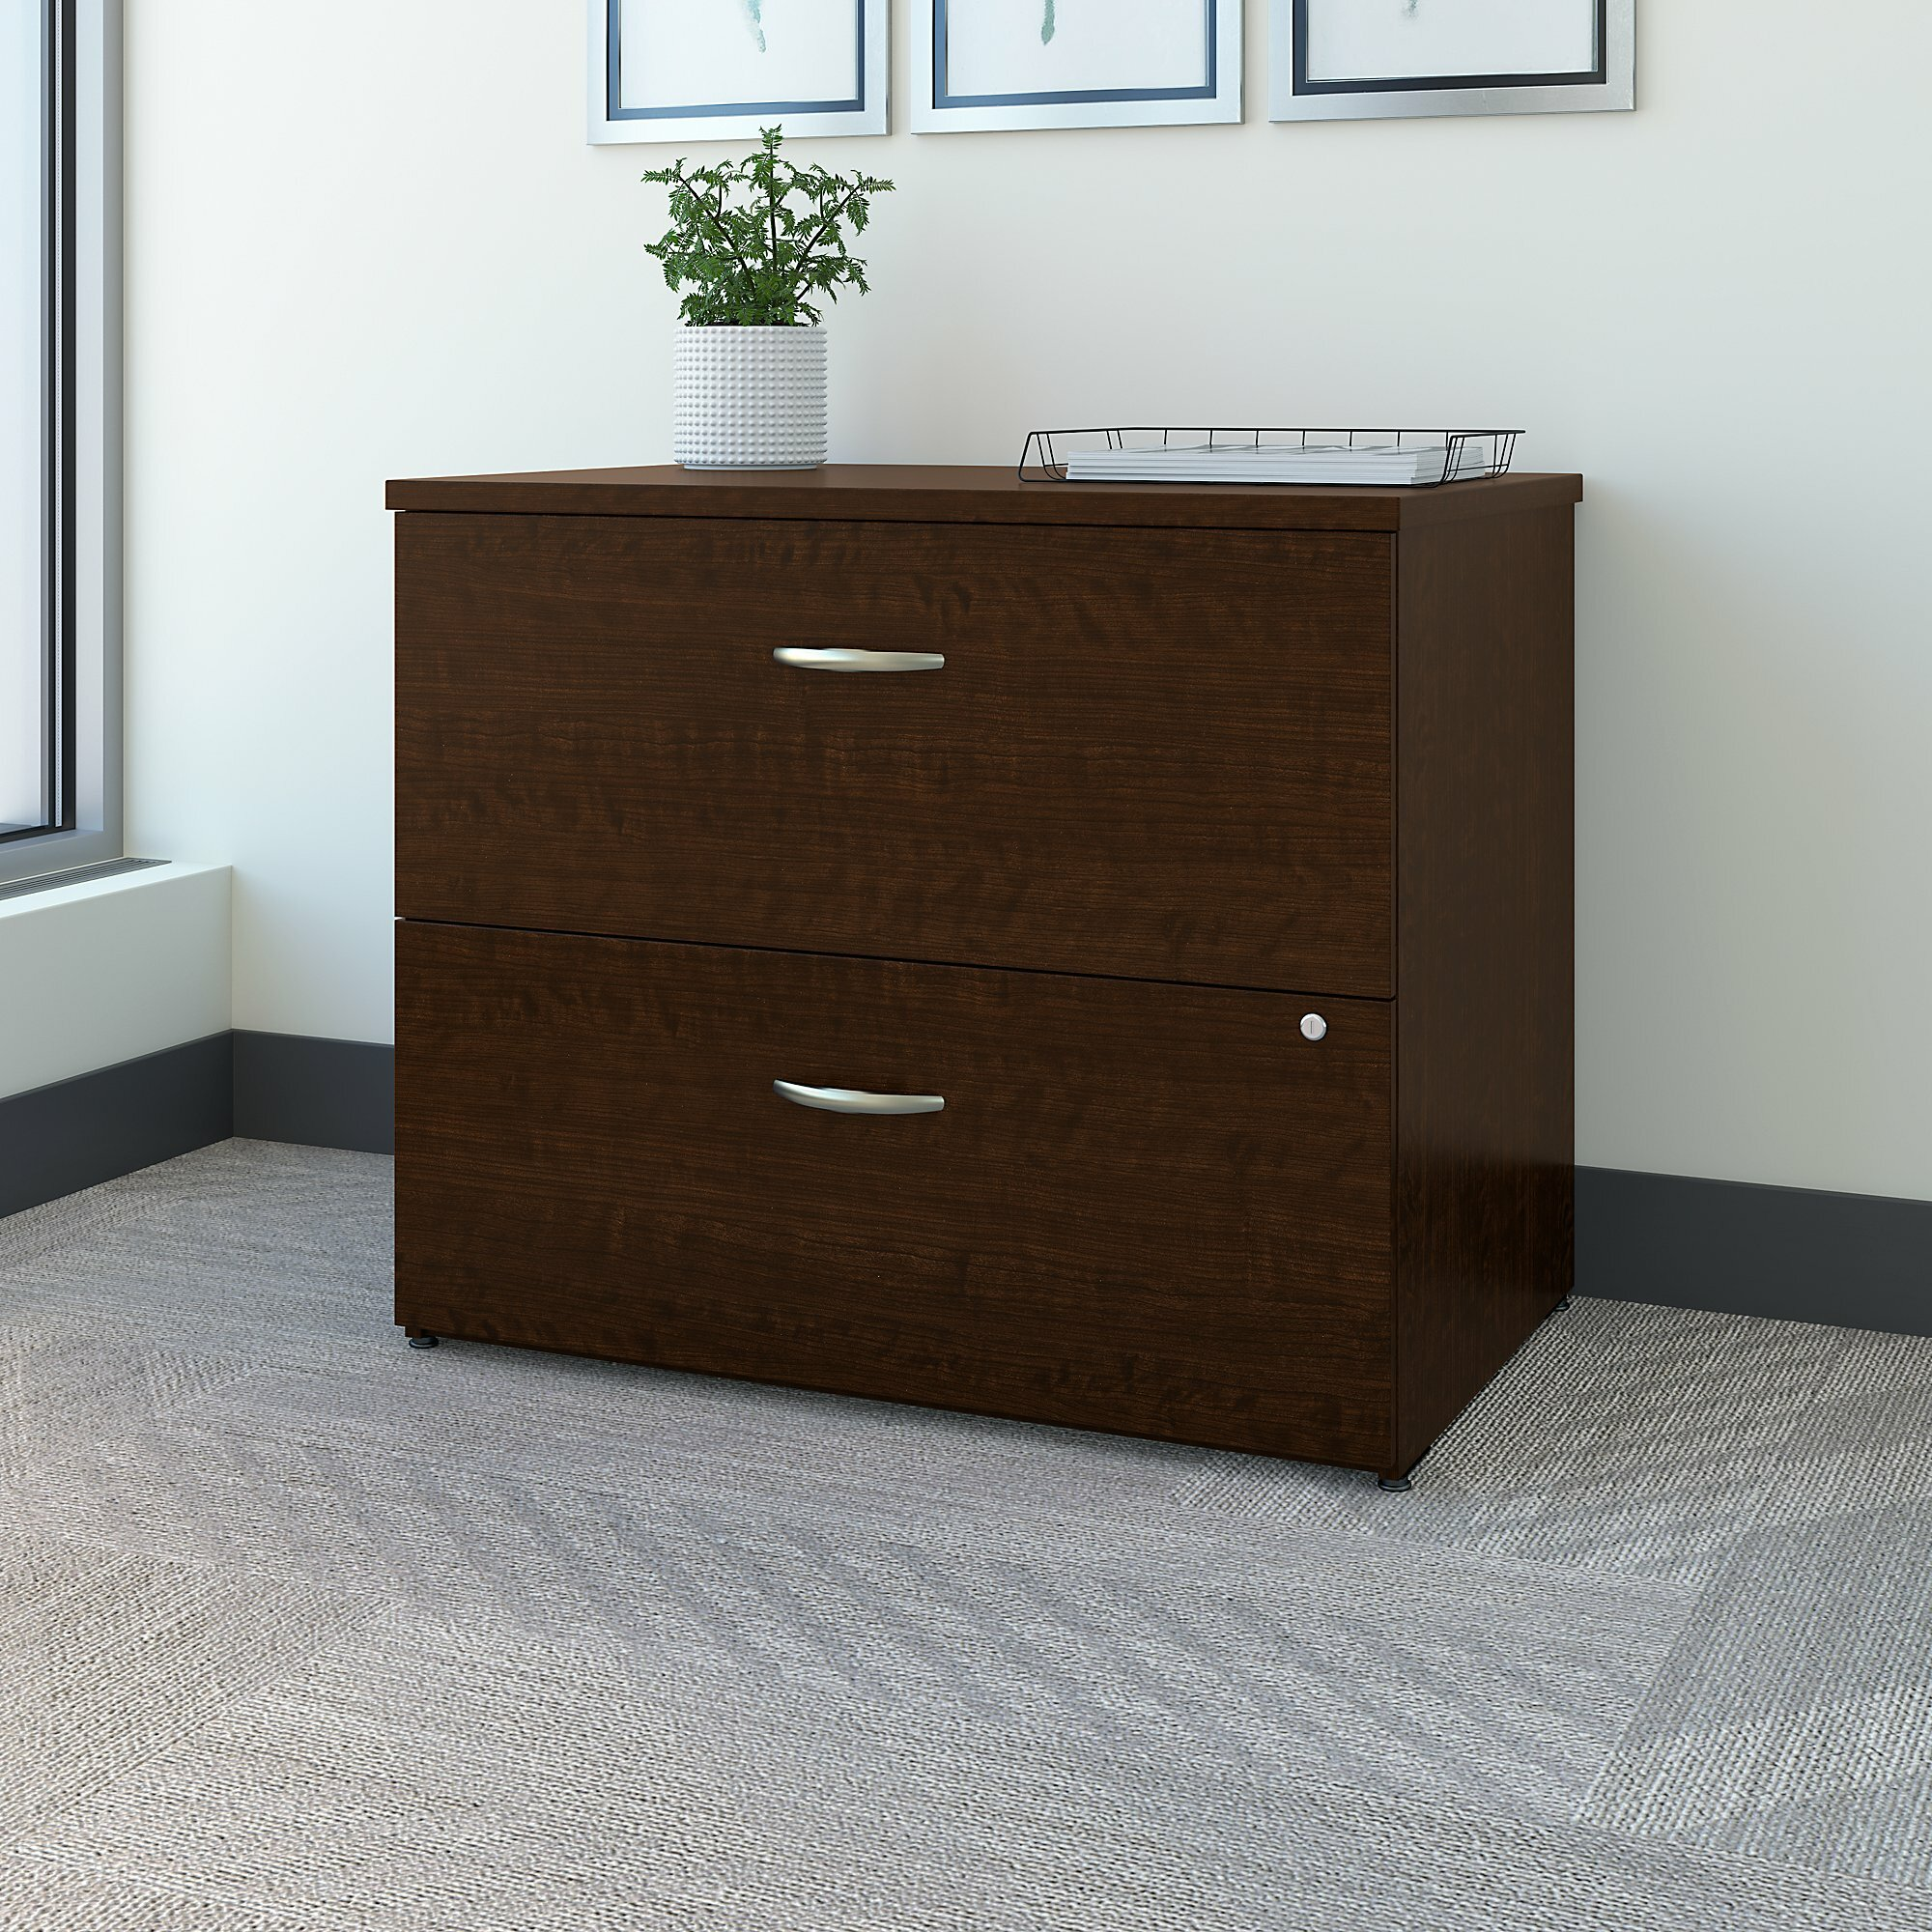 dynamic friendly by filing storage arrowood used files furniture lateral office national budget products cabinets drawer